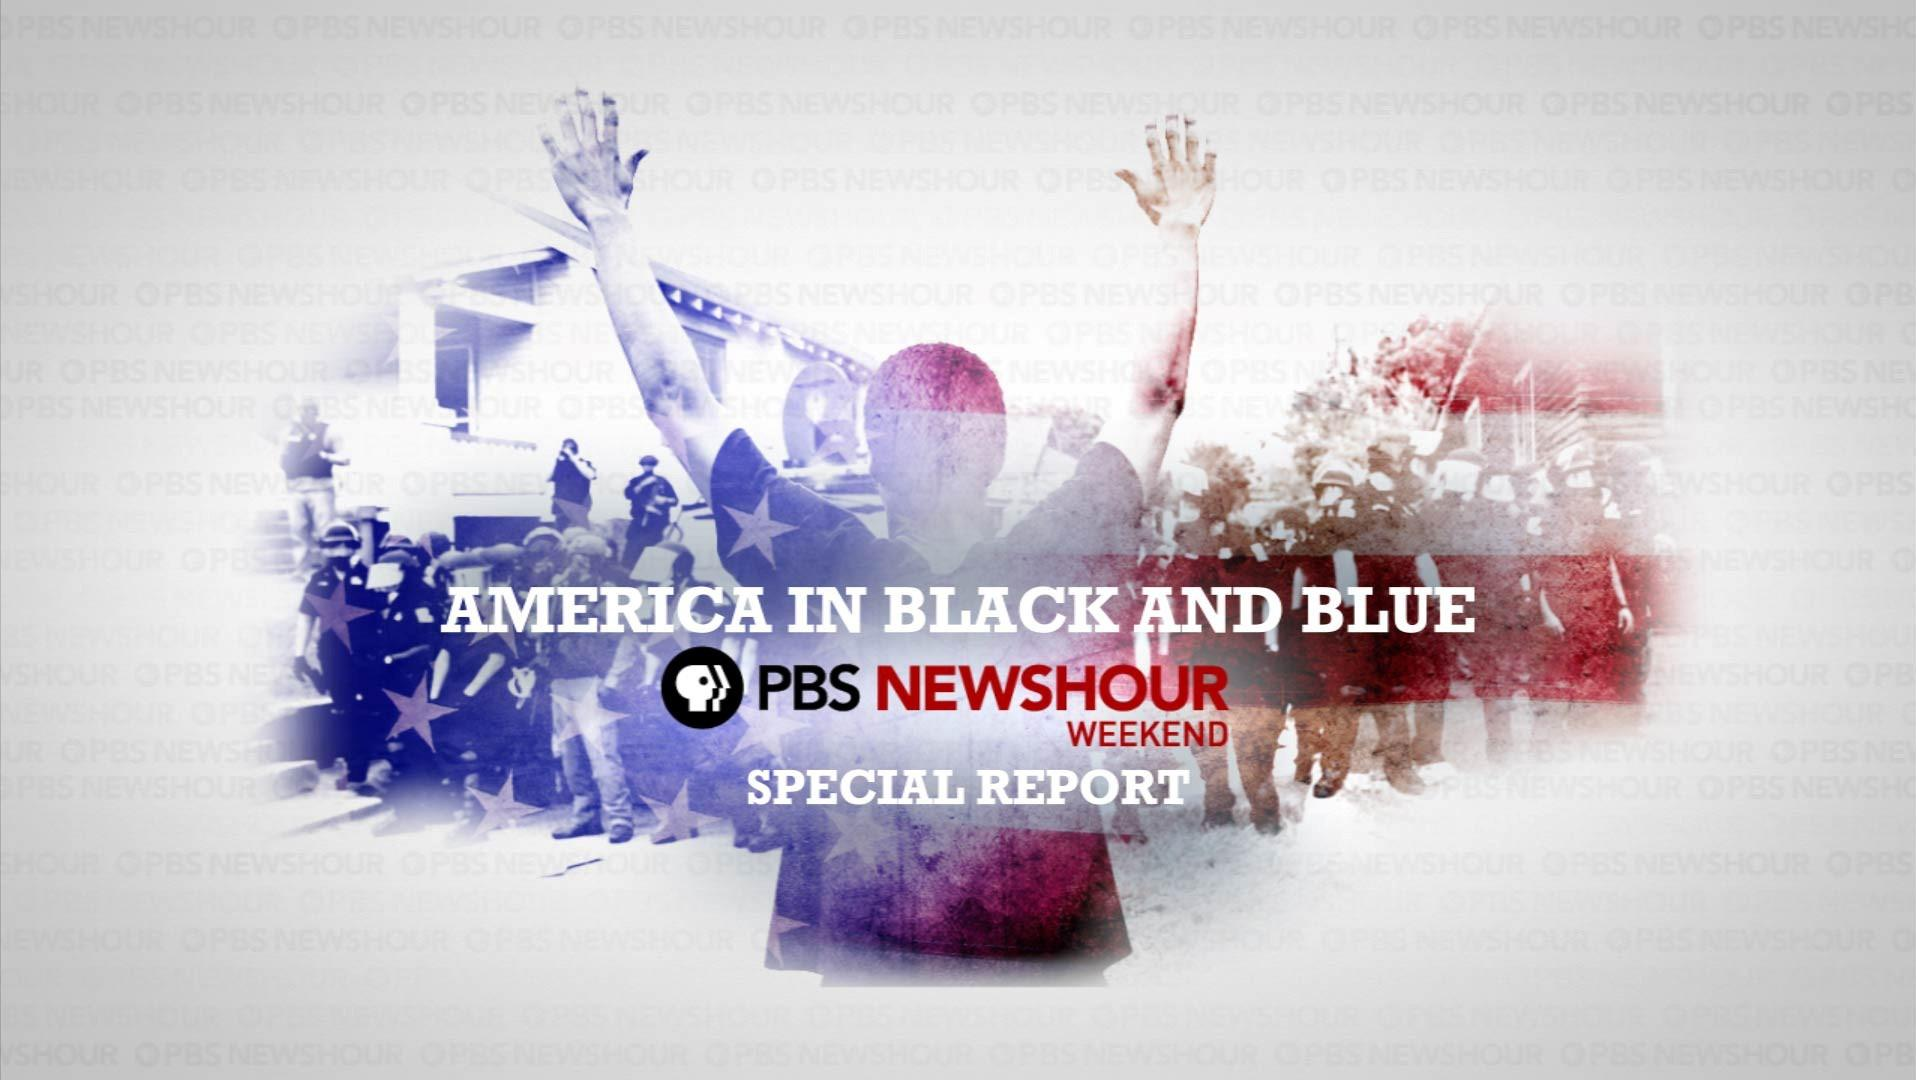 PBS NewsHour Special: America in Black and Blue